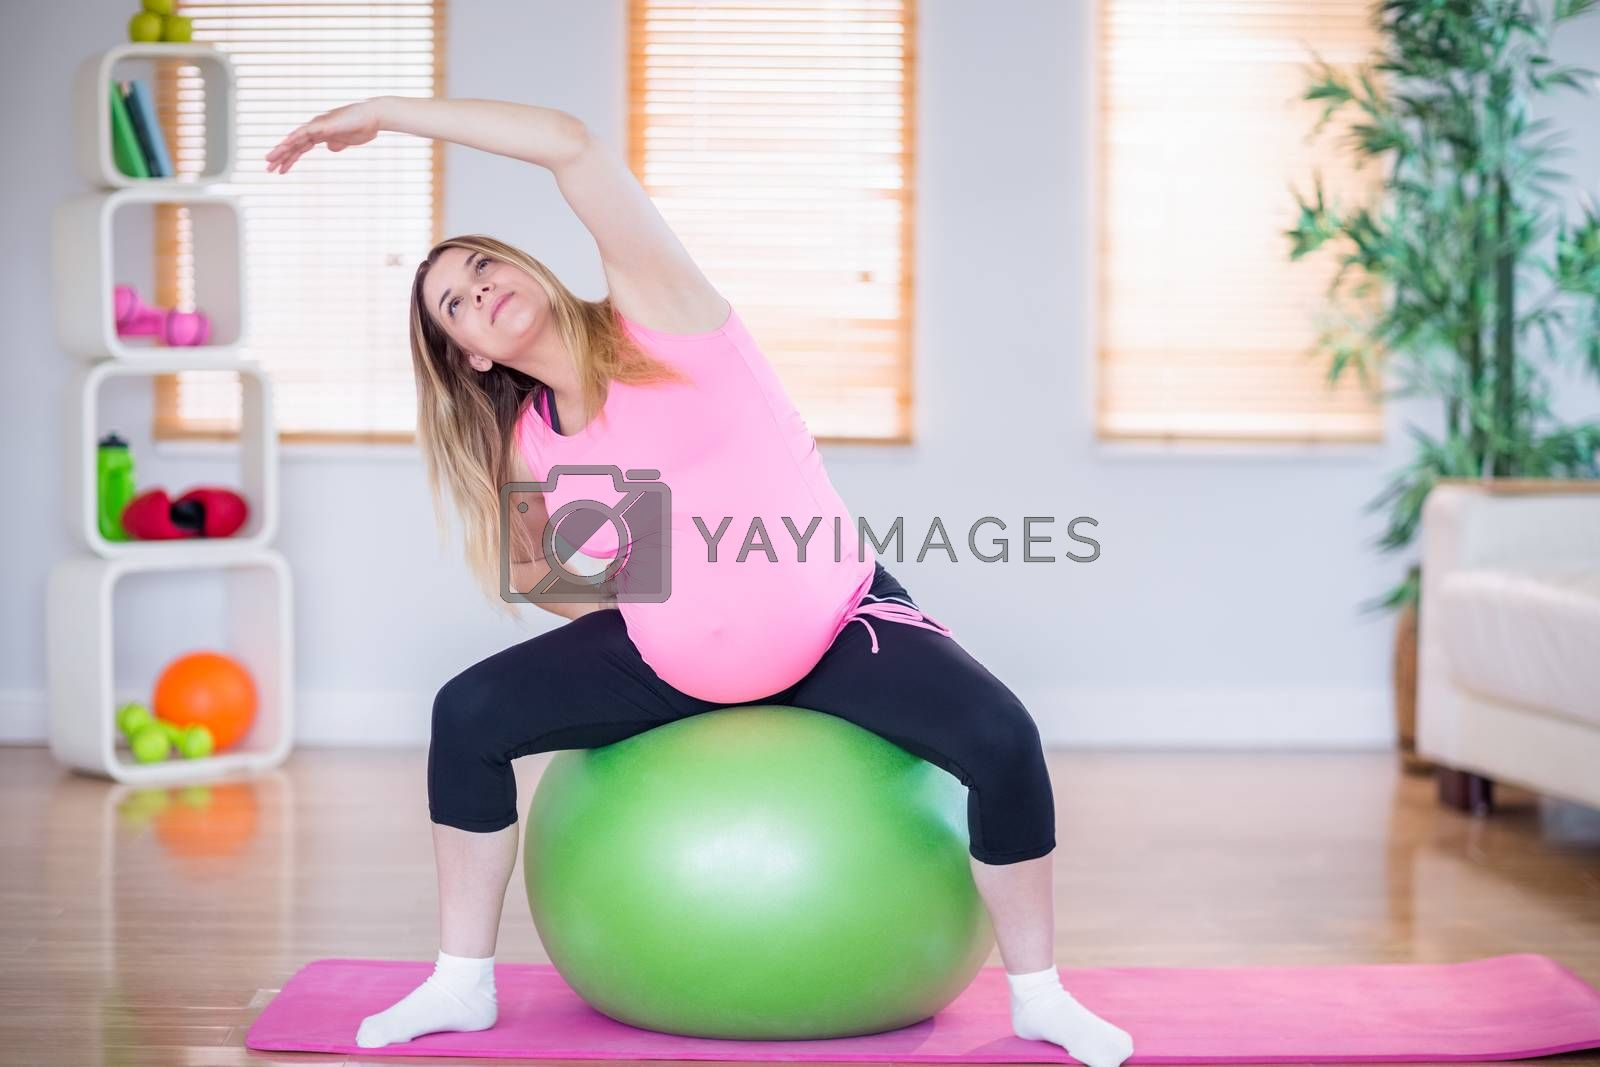 Royalty free image of Pregnant woman exercising on exercise ball by Wavebreakmedia